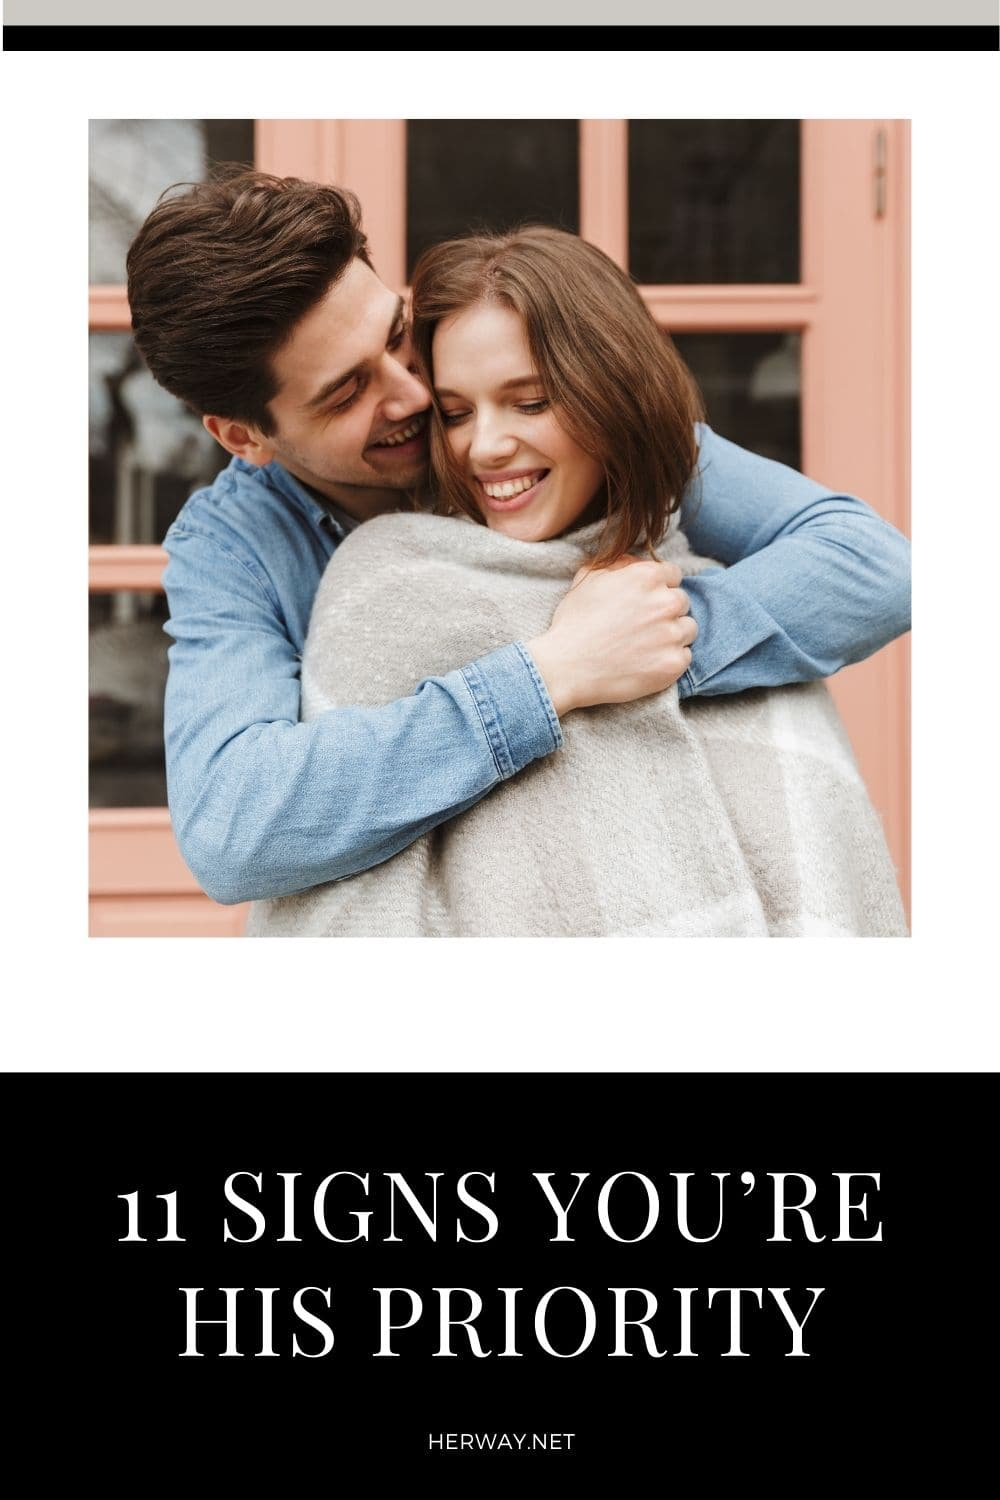 11 Signs You're His Priority